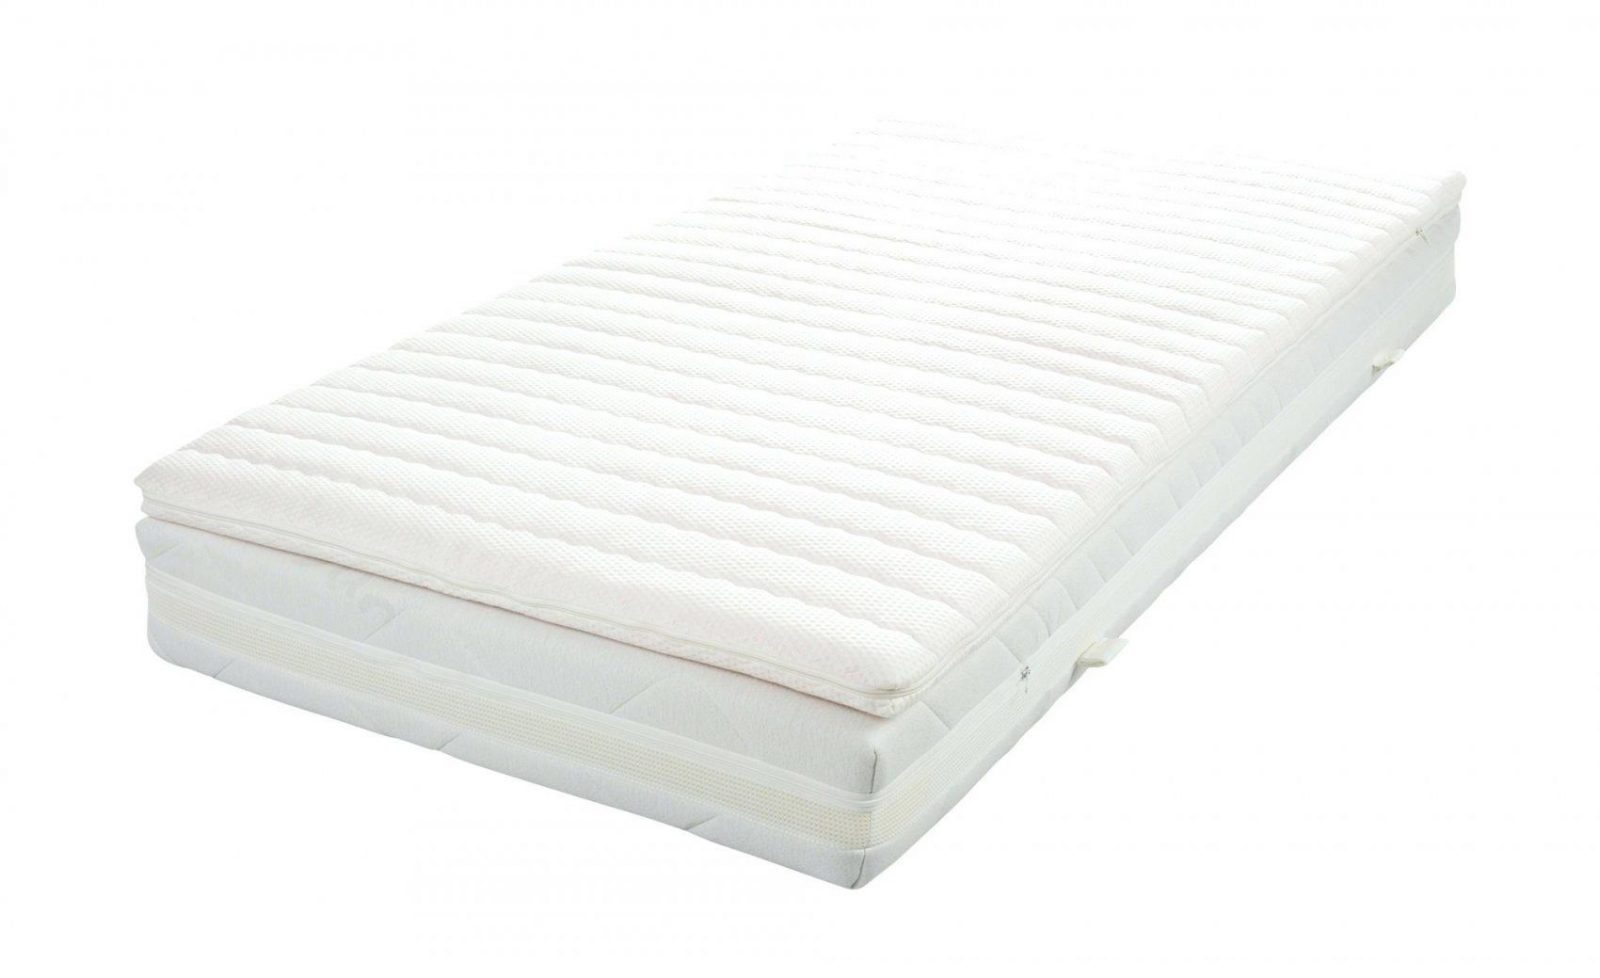 Topping Matras Ikea : Ikea at matratzen interesting bed topper beautiful anmutig ikea